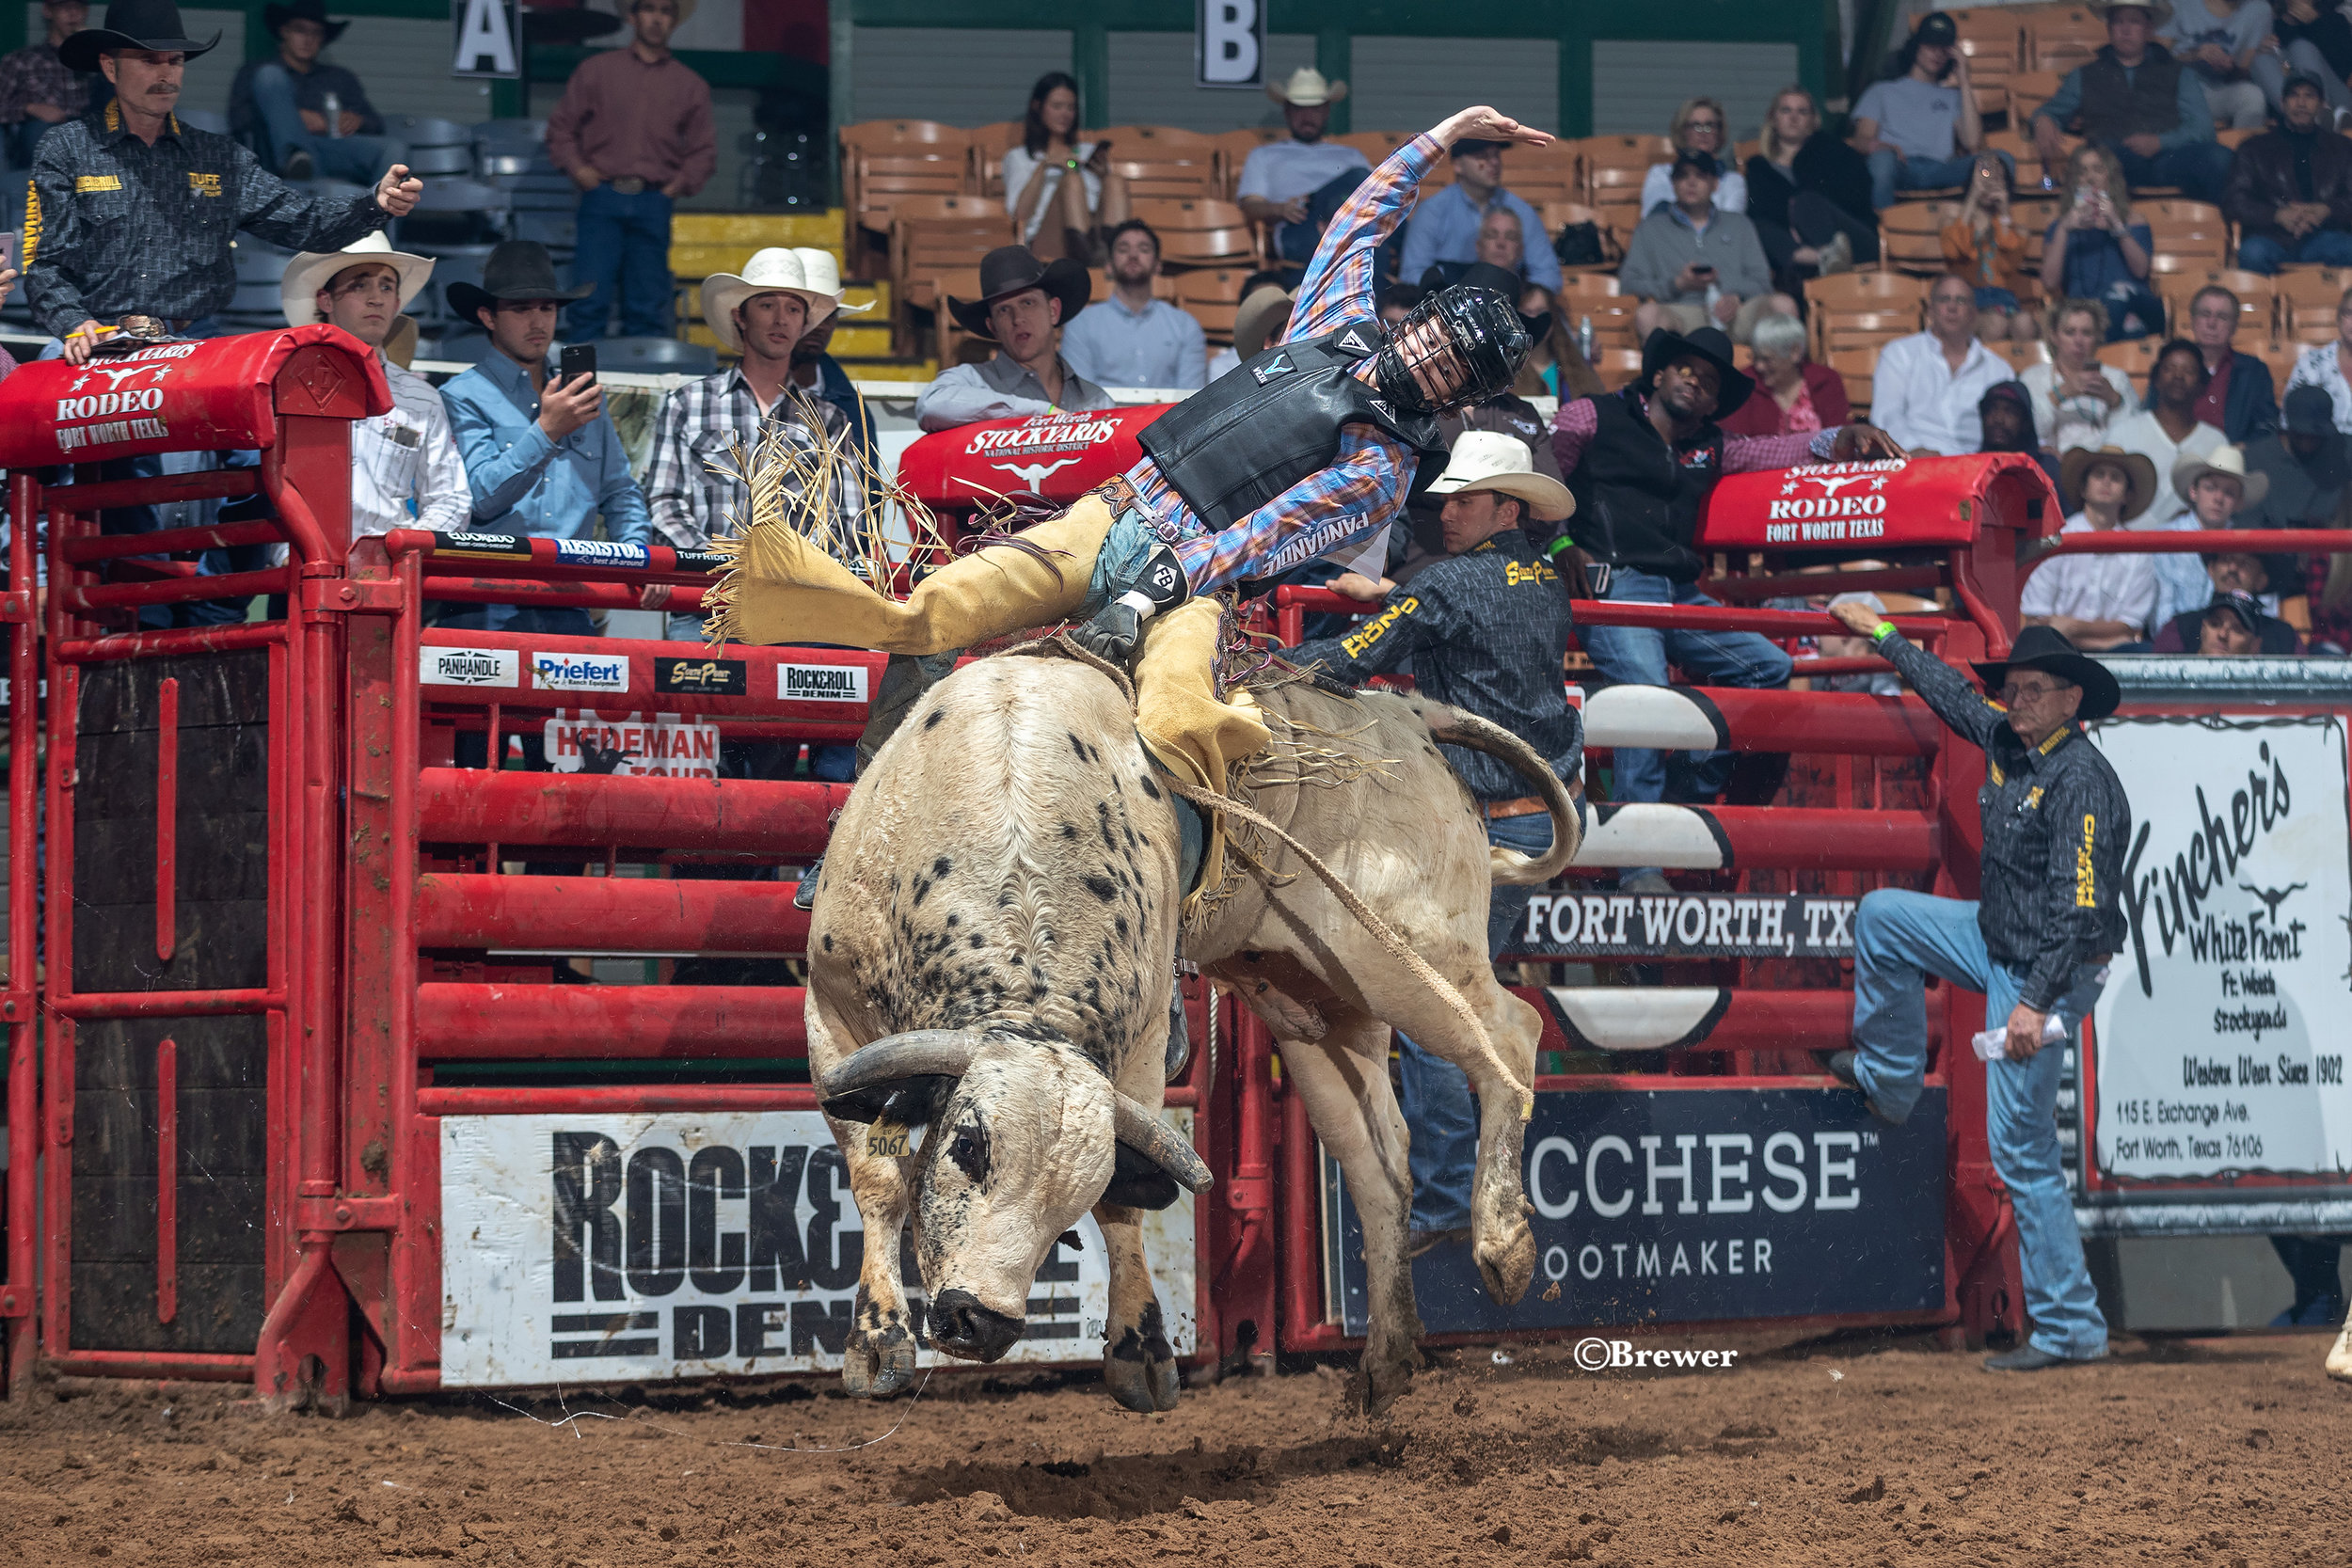 Maverick Potter pictured on Flea Flicker (88.5 pts) at the Fort Worth Tuff Hedeman Challenge bull riding in April. Potter was the only qualified ride in the championship round to seal the win at the the IFYR Championship bull riding title in Shawnee, Oklahoma on July12.